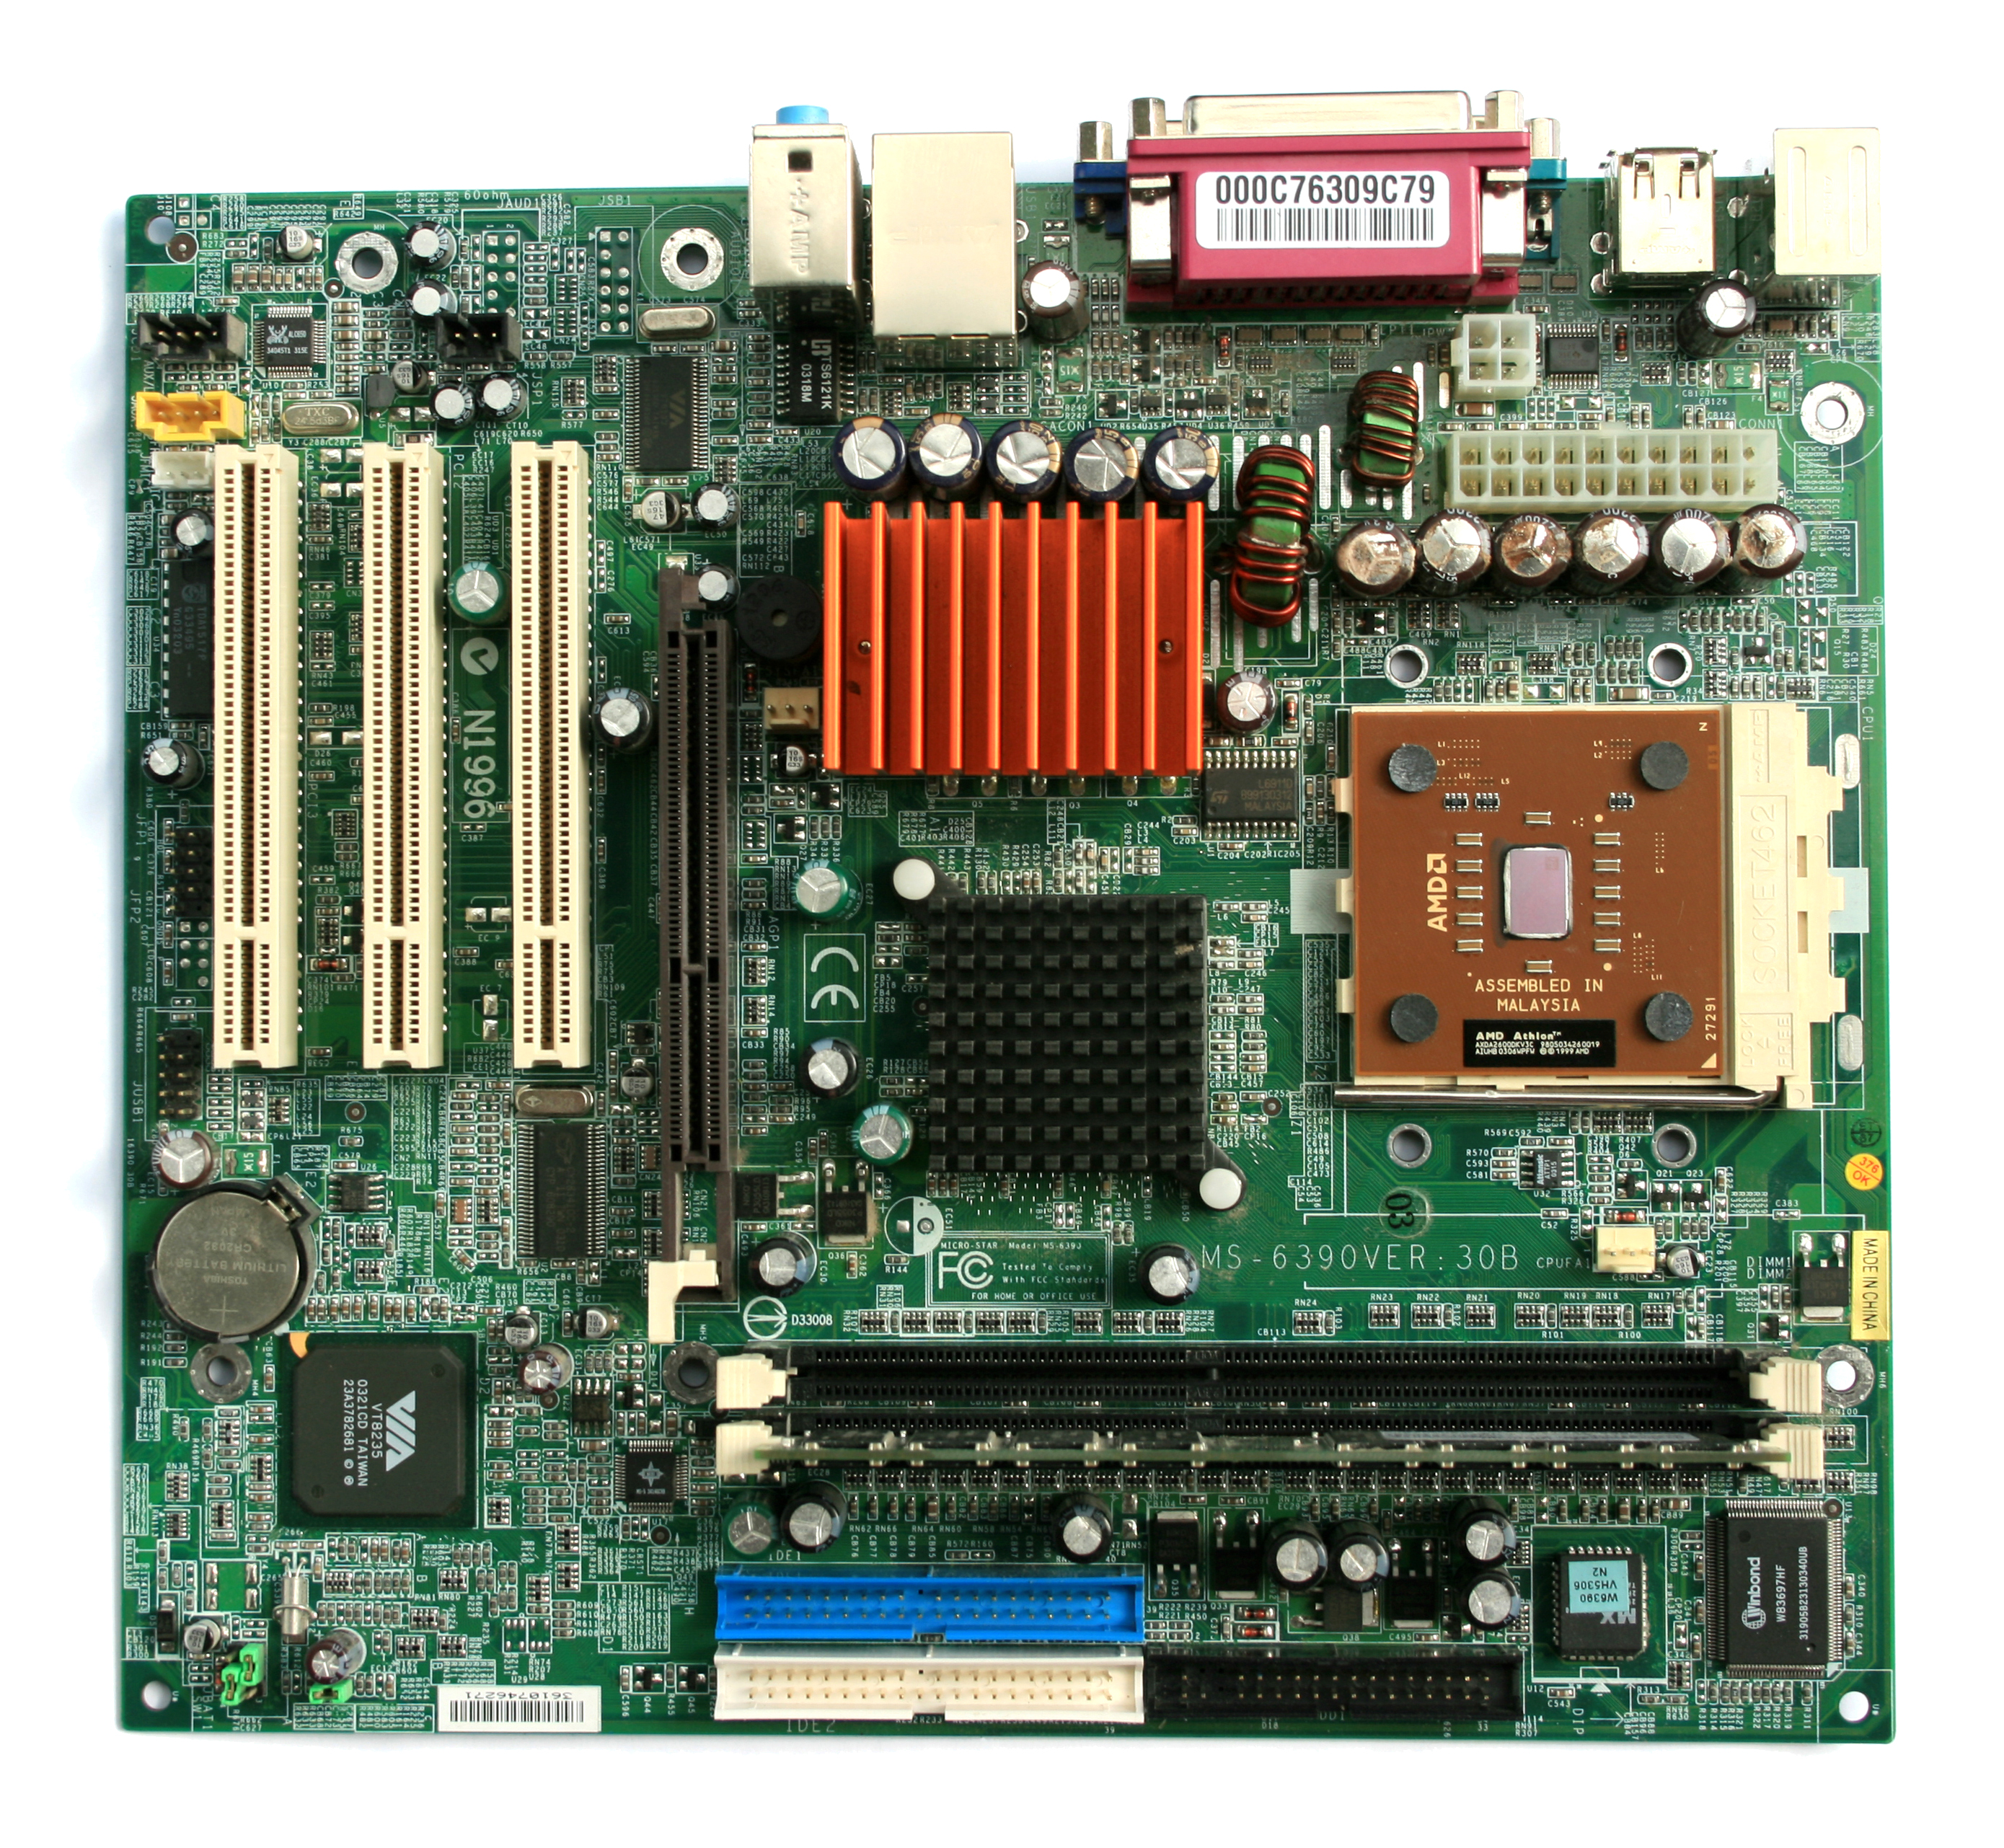 http://upload.wikimedia.org/wikipedia/commons/d/dd/MicroATX_Motherboard_with_AMD_Athlon_Processor_2_Digon3.jpg